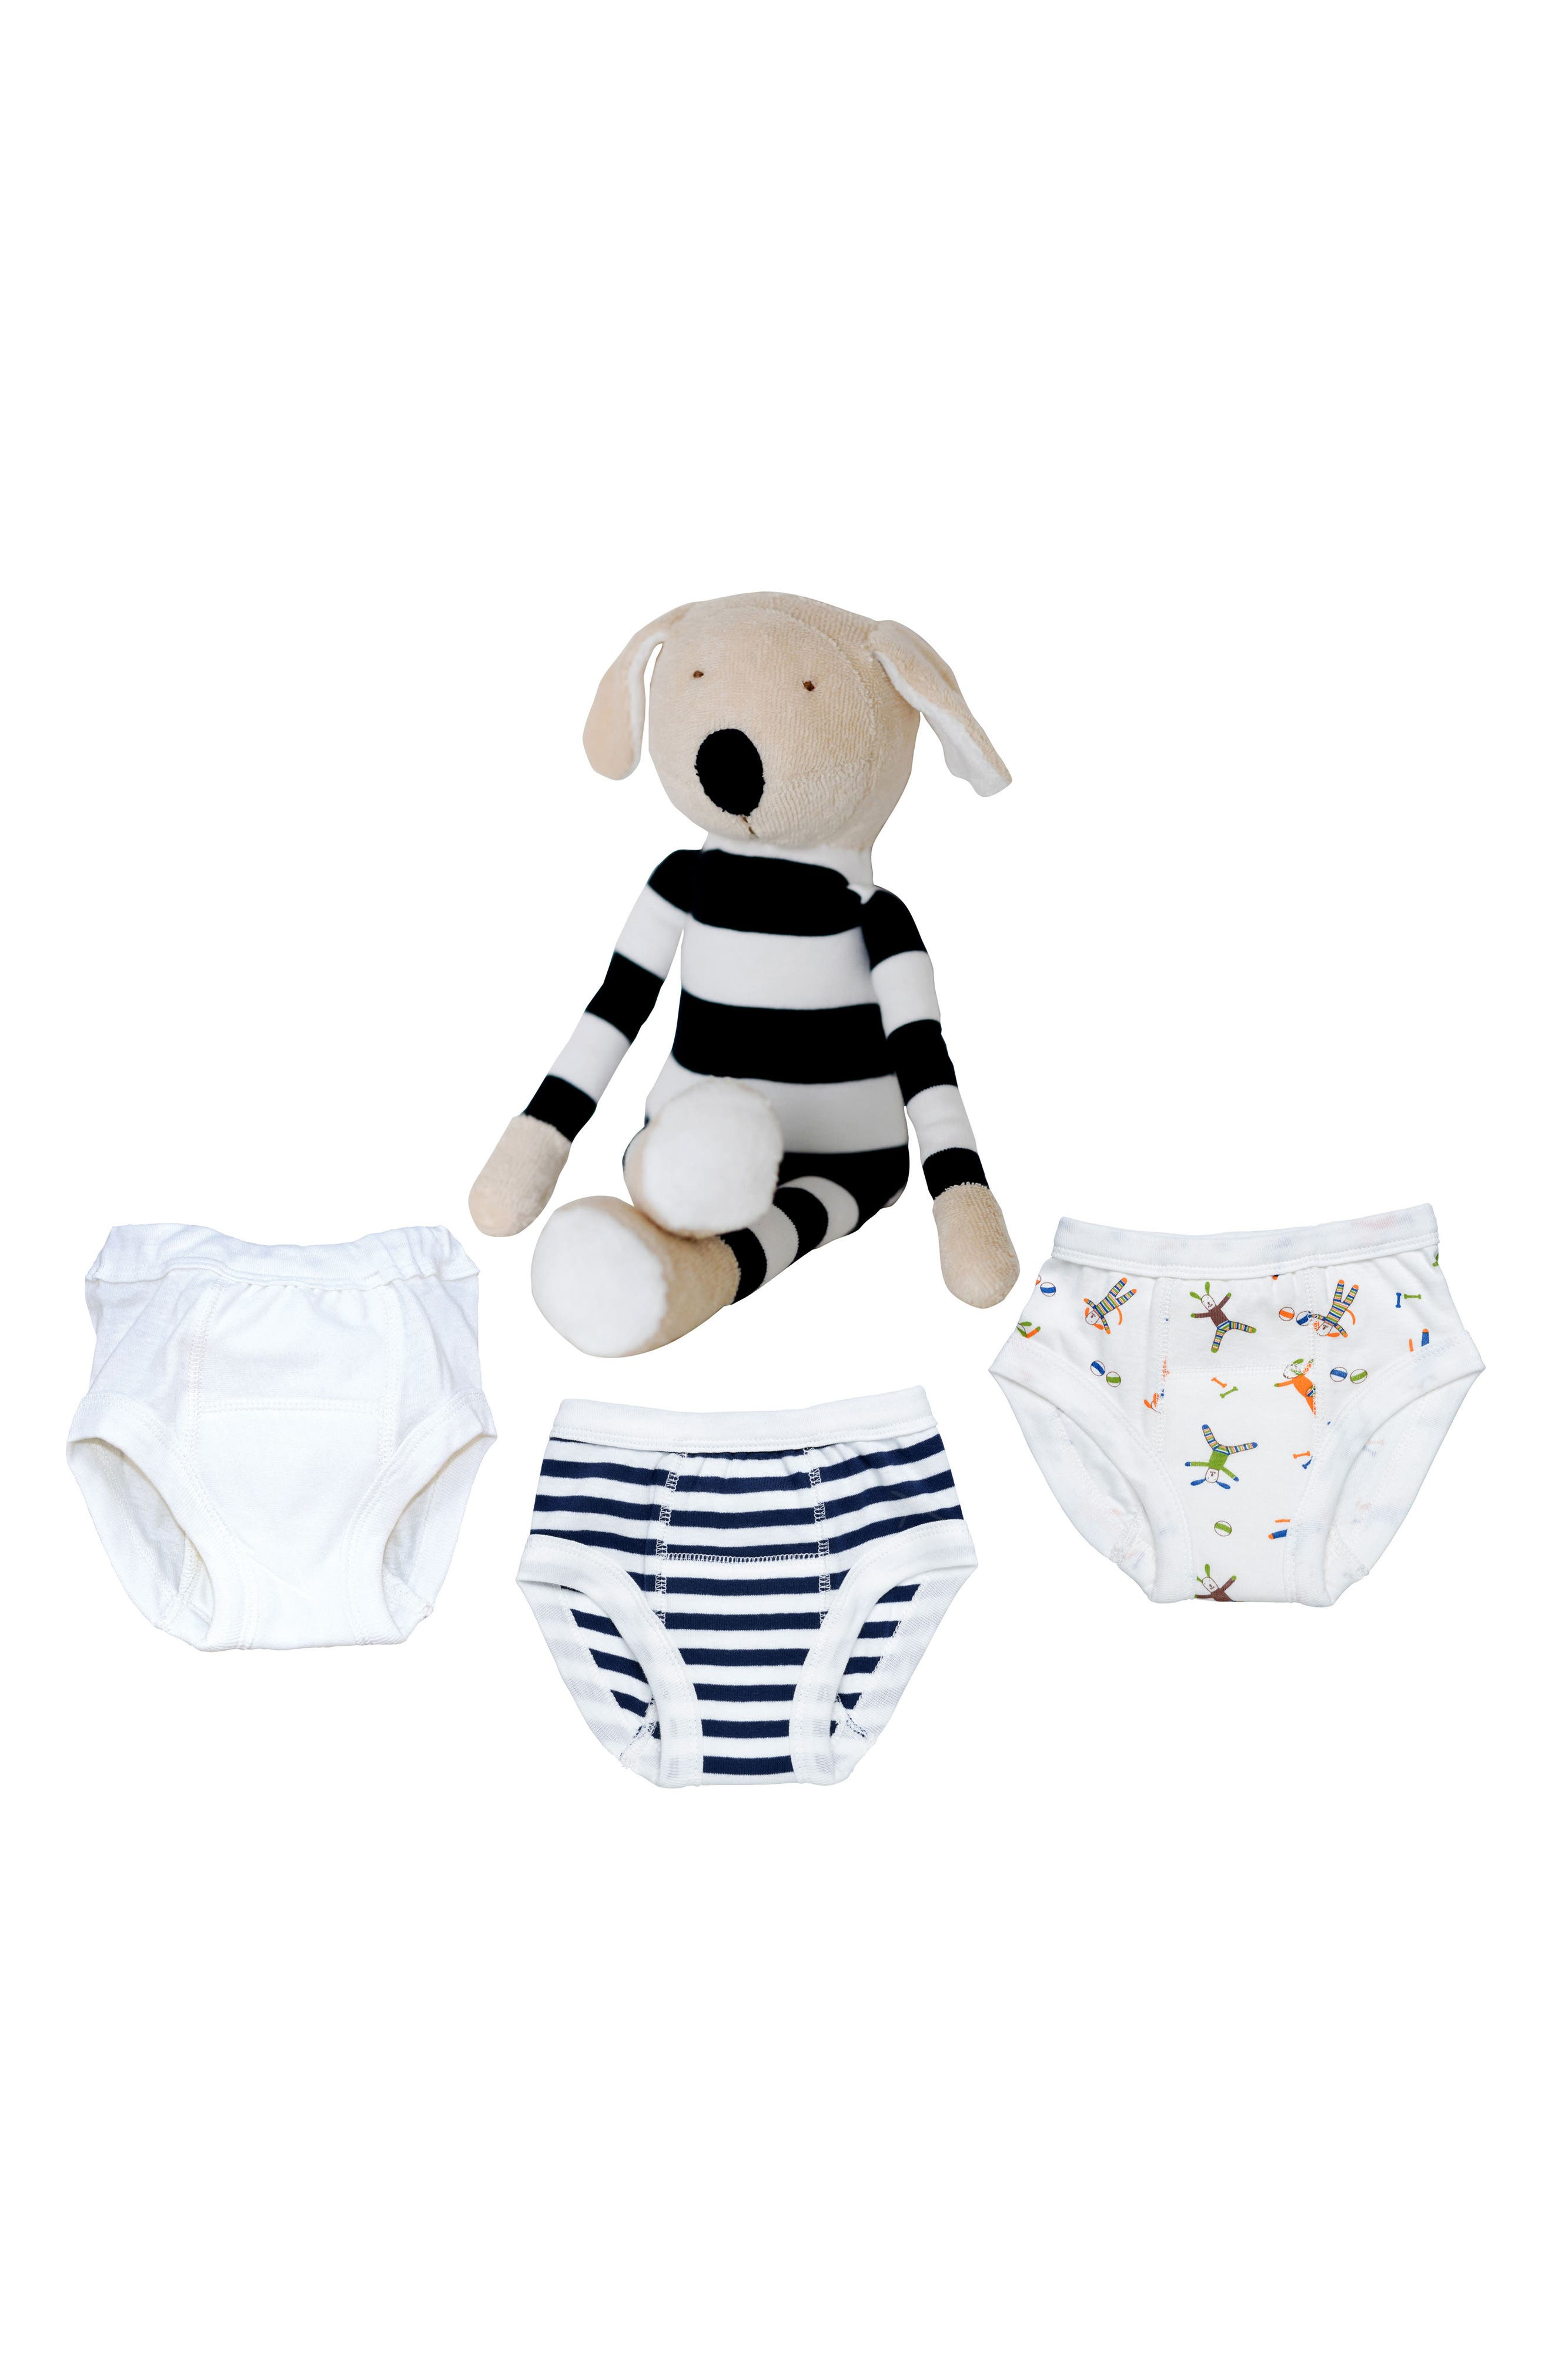 Under the Nile 4-Piece Training Pants & Buddy Stuffed Animal Set